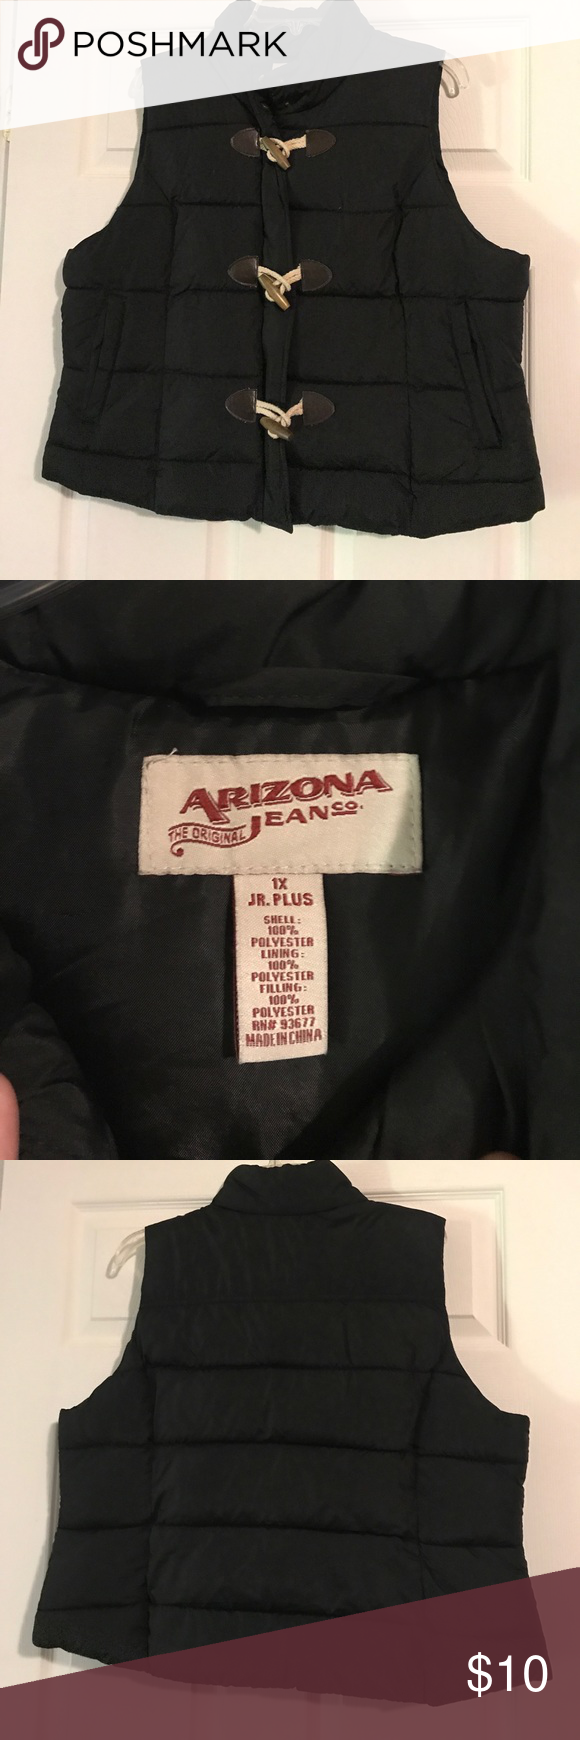 1c42e585ef2 Arizona puffer vest Black Arizona puffer vest. Size Junior 1X. Worn a few  times but in good condition Arizona Jean Company Jackets   Coats Puffers